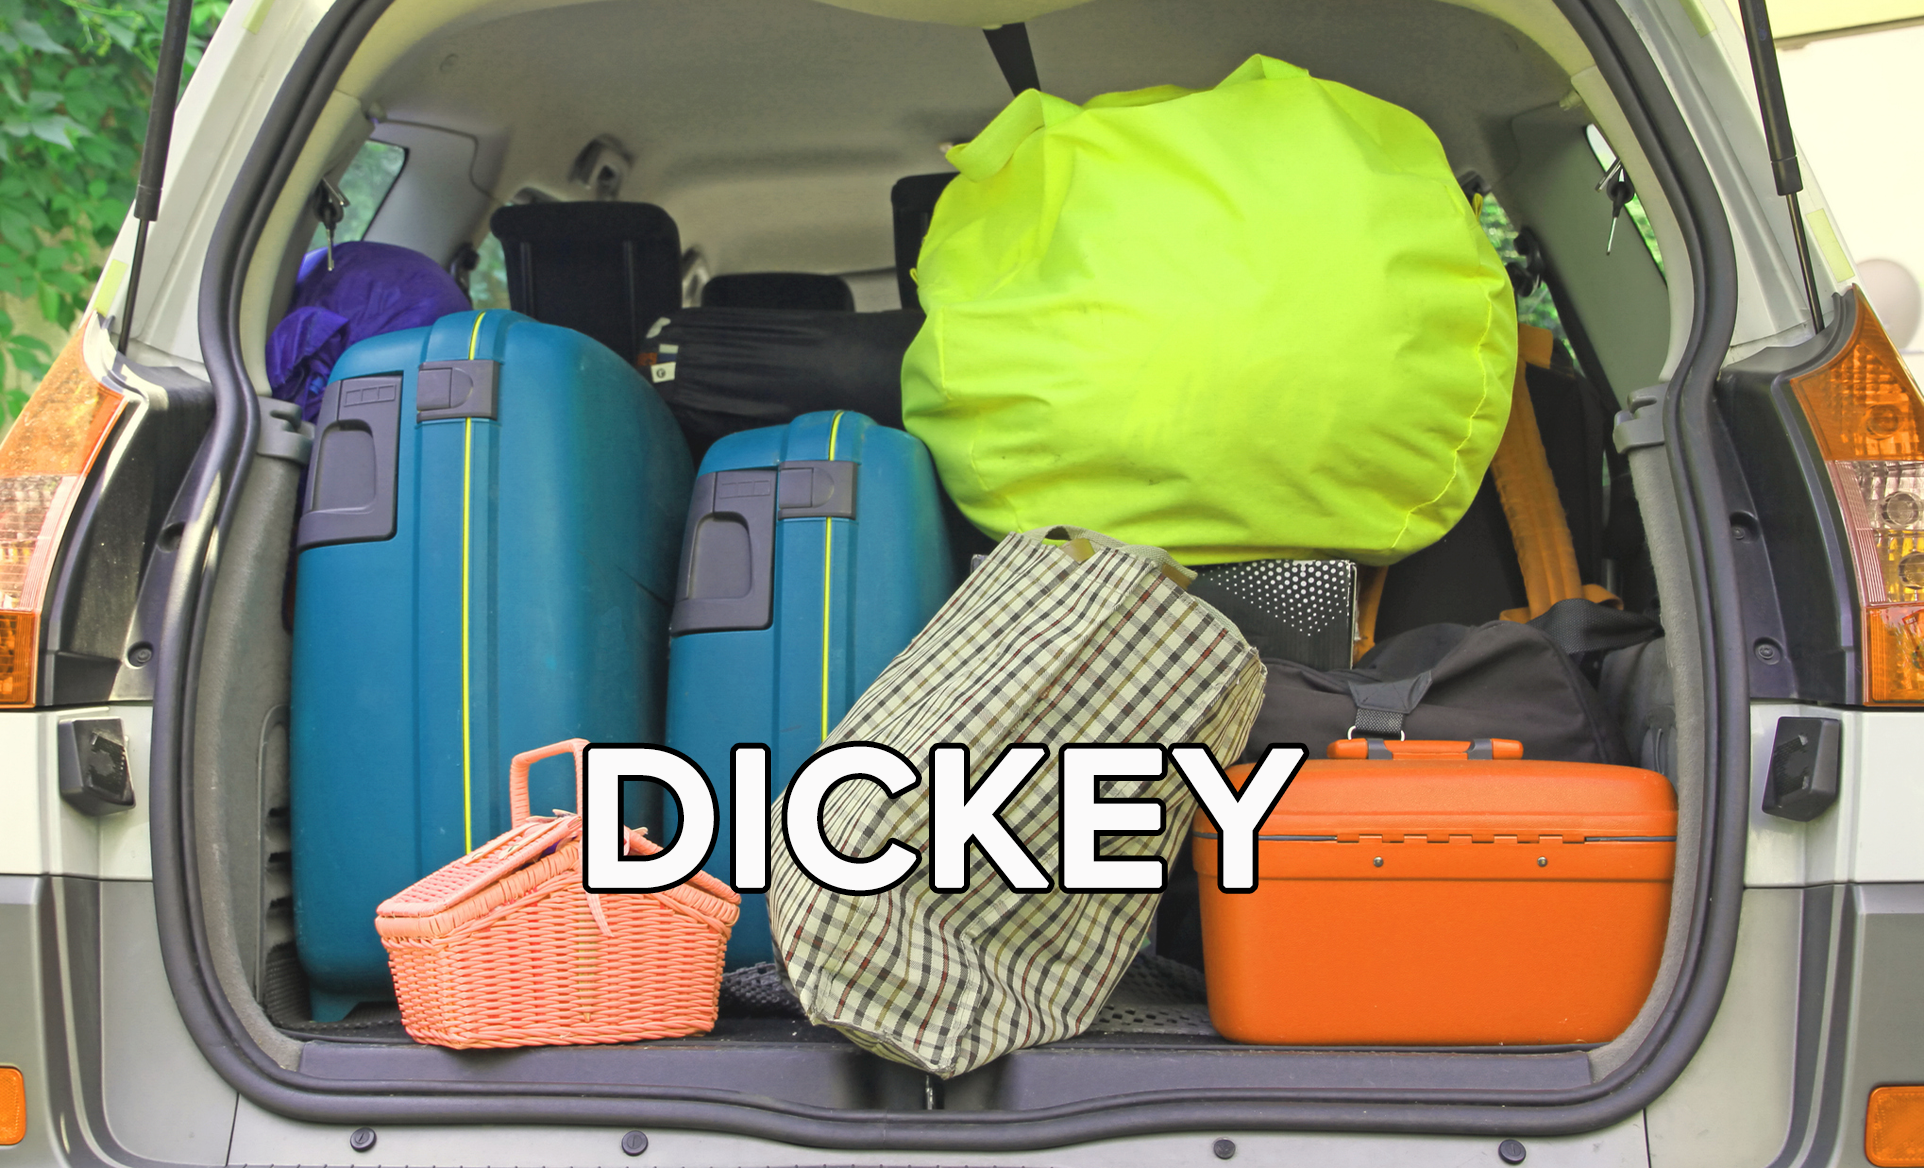 The trunk of a car is filled to the brim with luggage